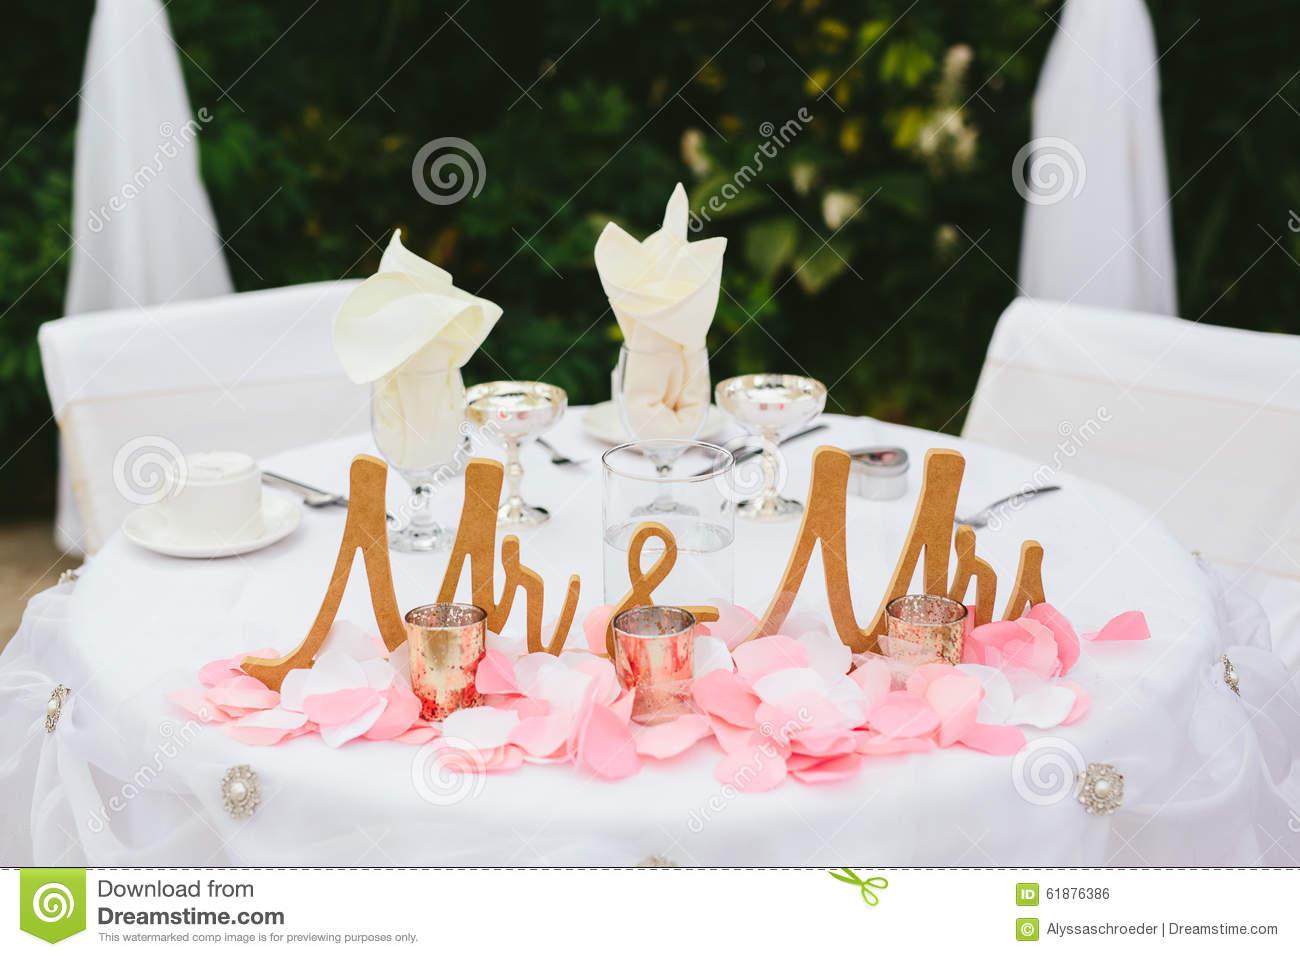 Bride And Groom Wedding Reception Table Decor.